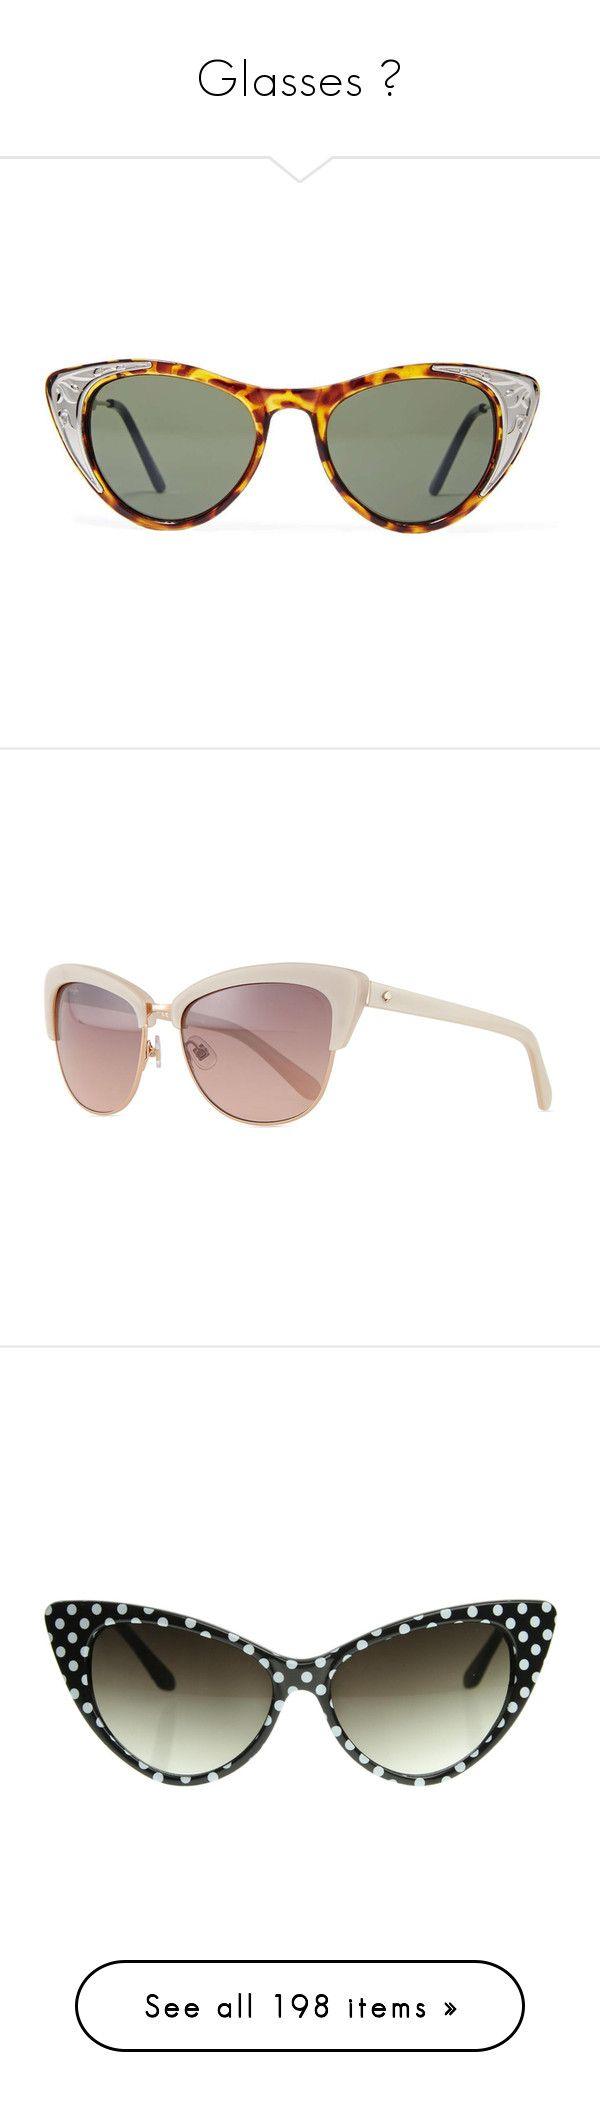 """""""Glasses ♡"""" by foreverdreamt ❤ liked on Polyvore featuring accessories, eyewear, sunglasses, tooie, red cateye glasses, silver sunglasses, red cateye sunglasses, tortoise cat eye sunglasses, red sunglasses and beige"""